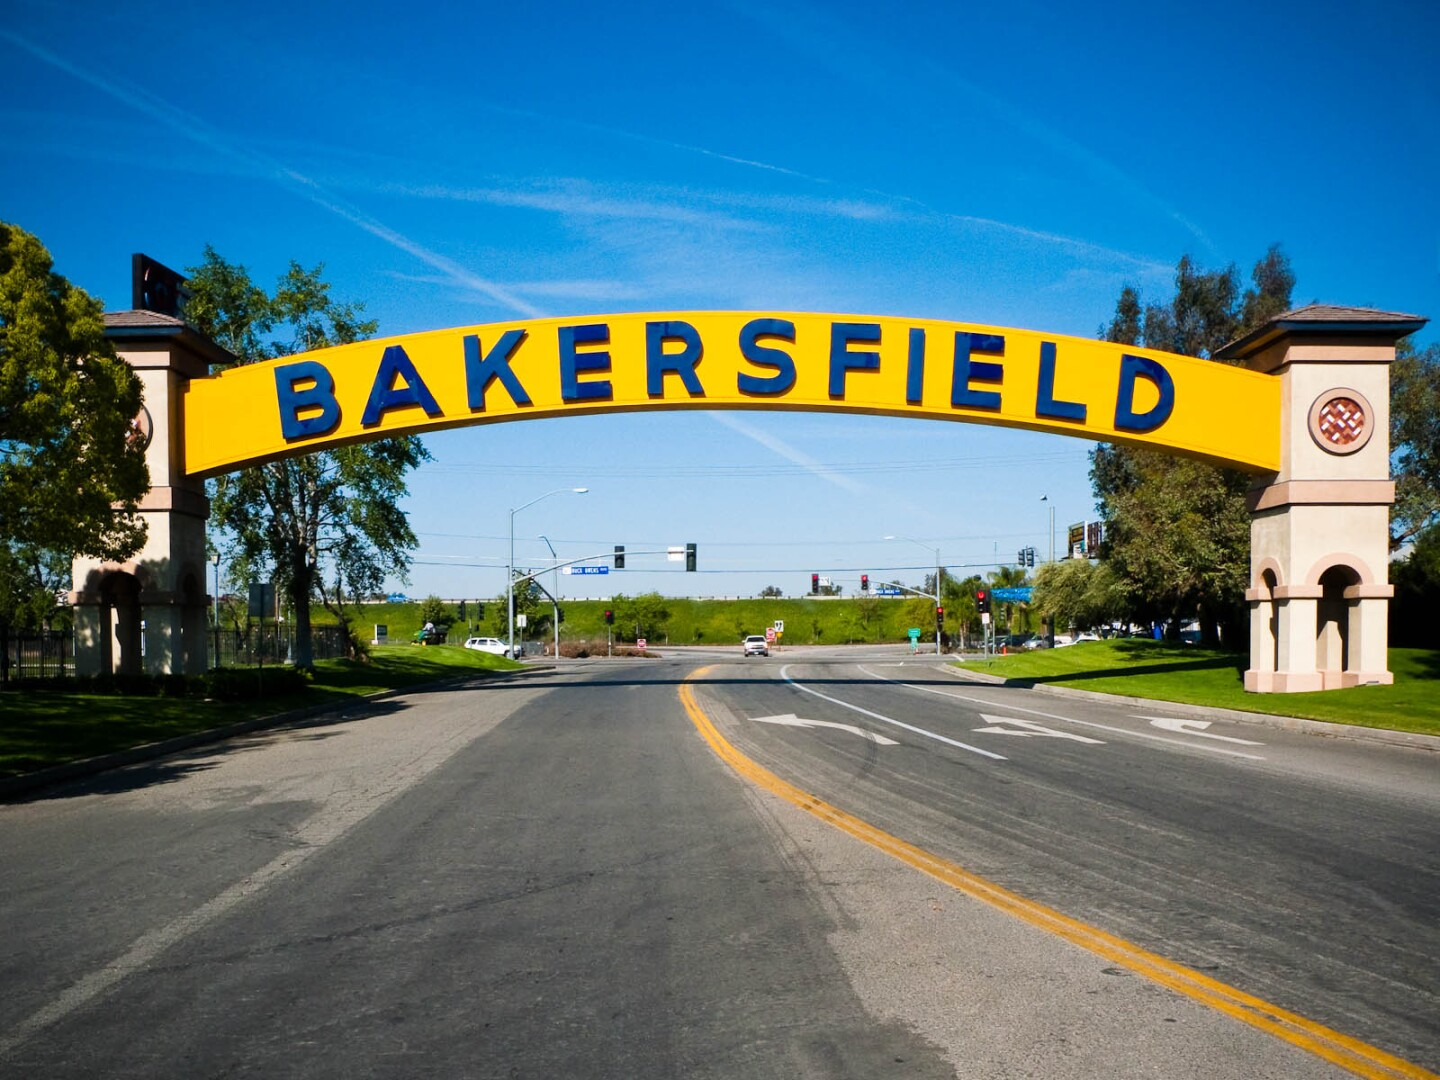 The Bakersfield Arch in Bakersfield, California, USA | Nick Chapman/ Wikicommons